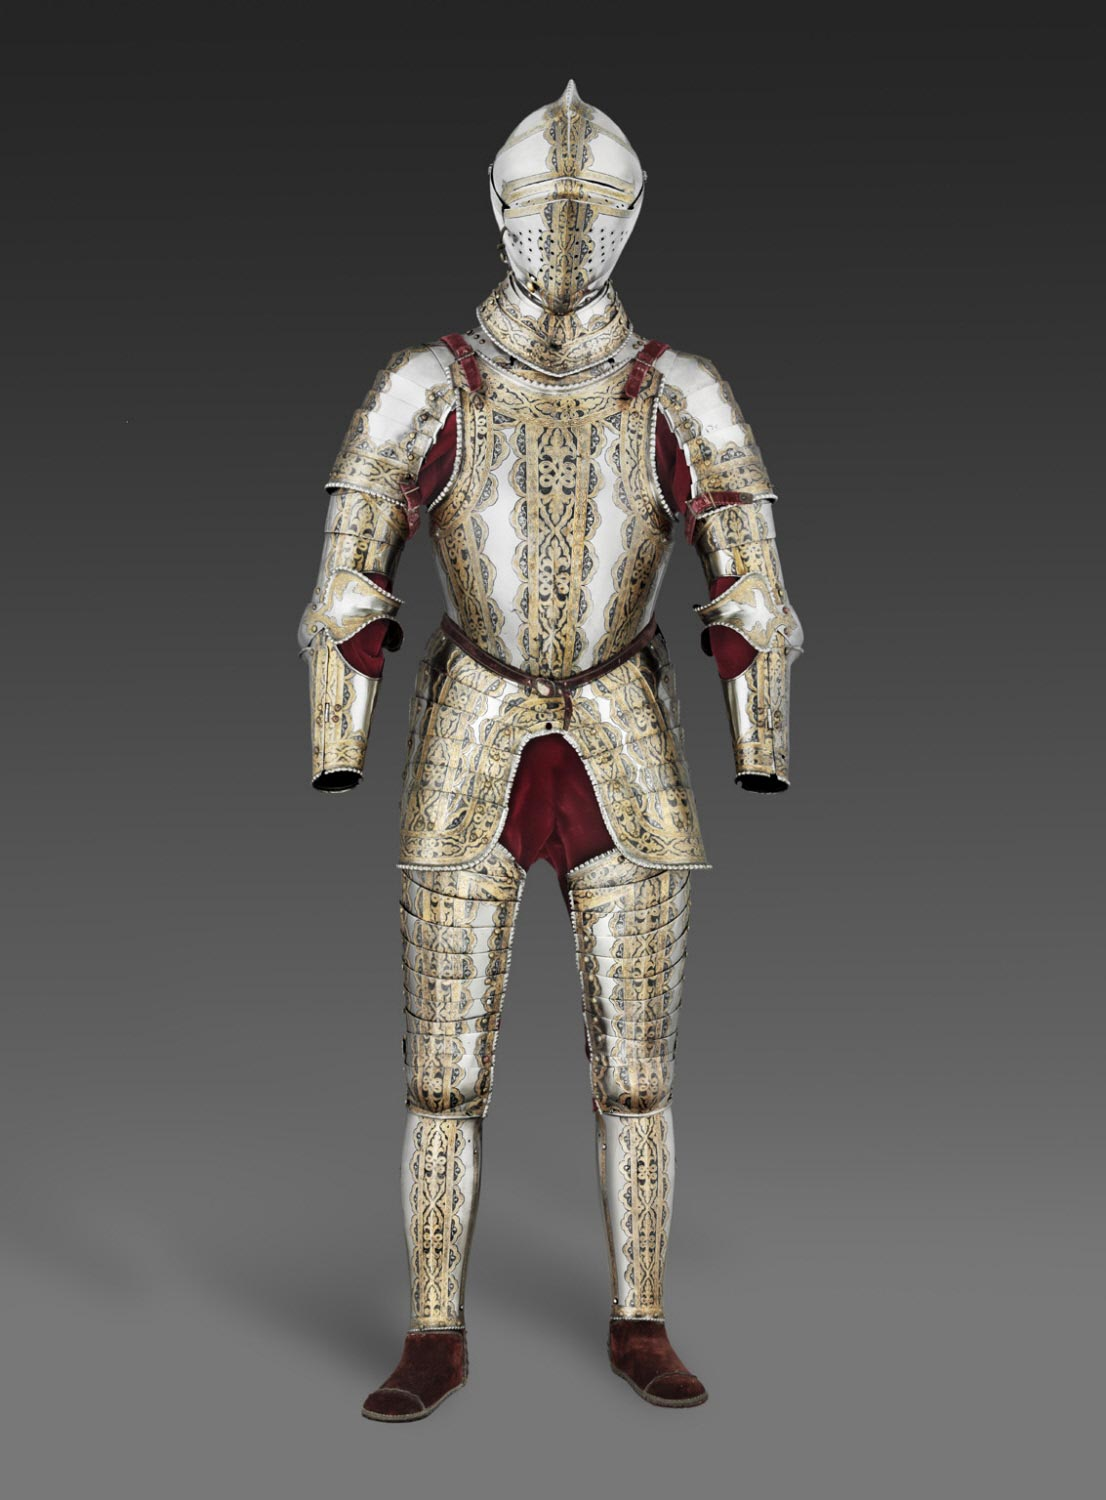 Portions of an Armor Garniture